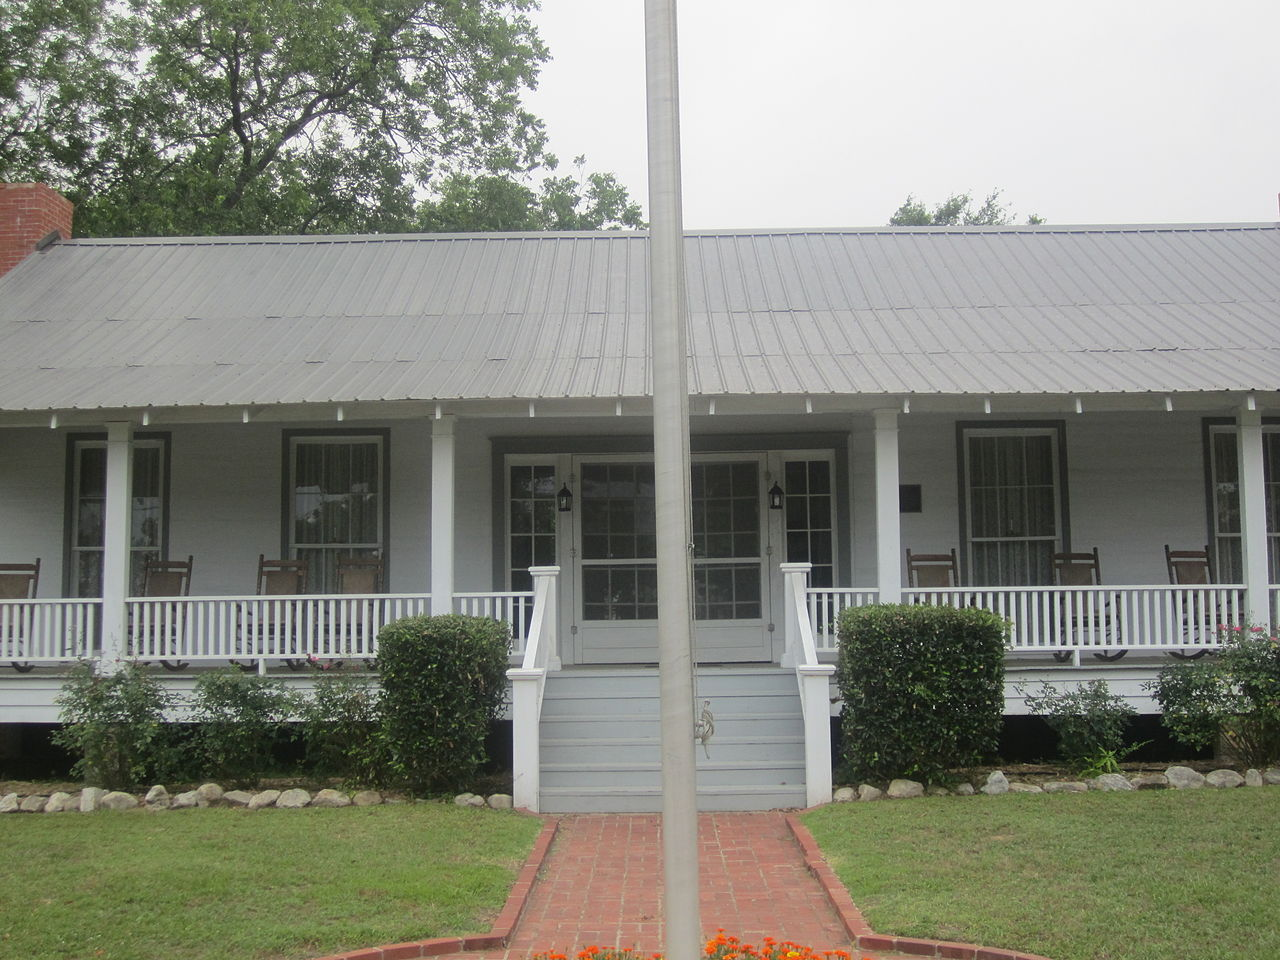 File dunn home greenwood la img 2893 jpg wikipedia for Home img